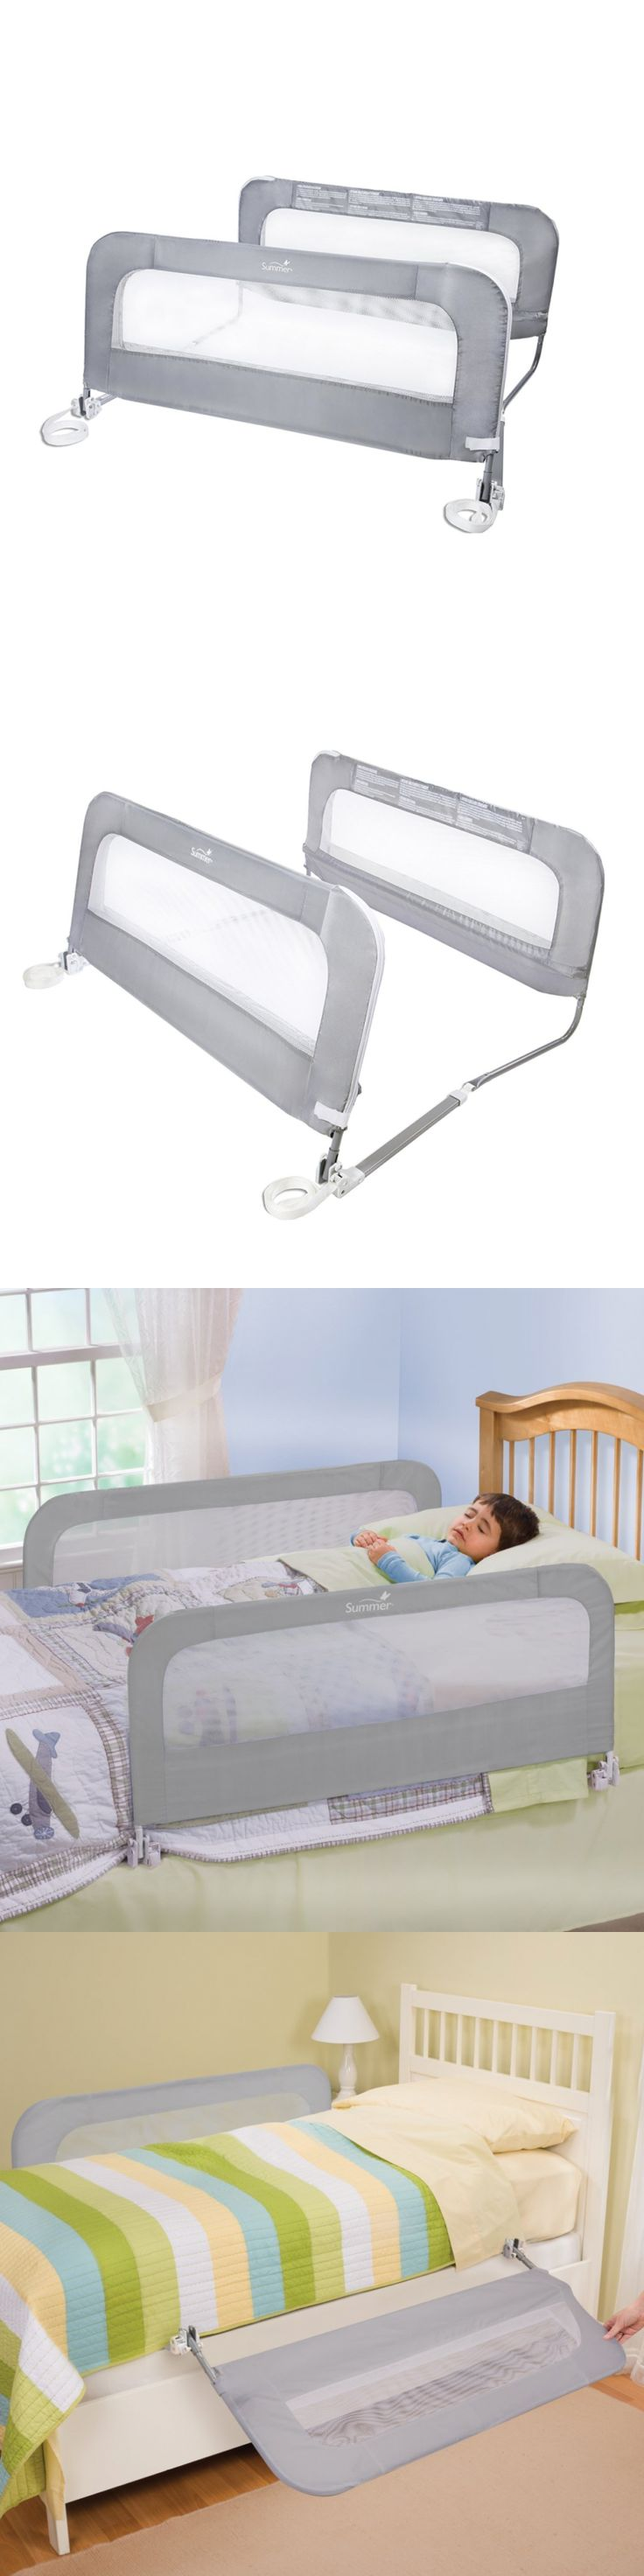 Bed Rails 162183 Summer Infant Double Safety Bedrail Grey BUY IT NOW